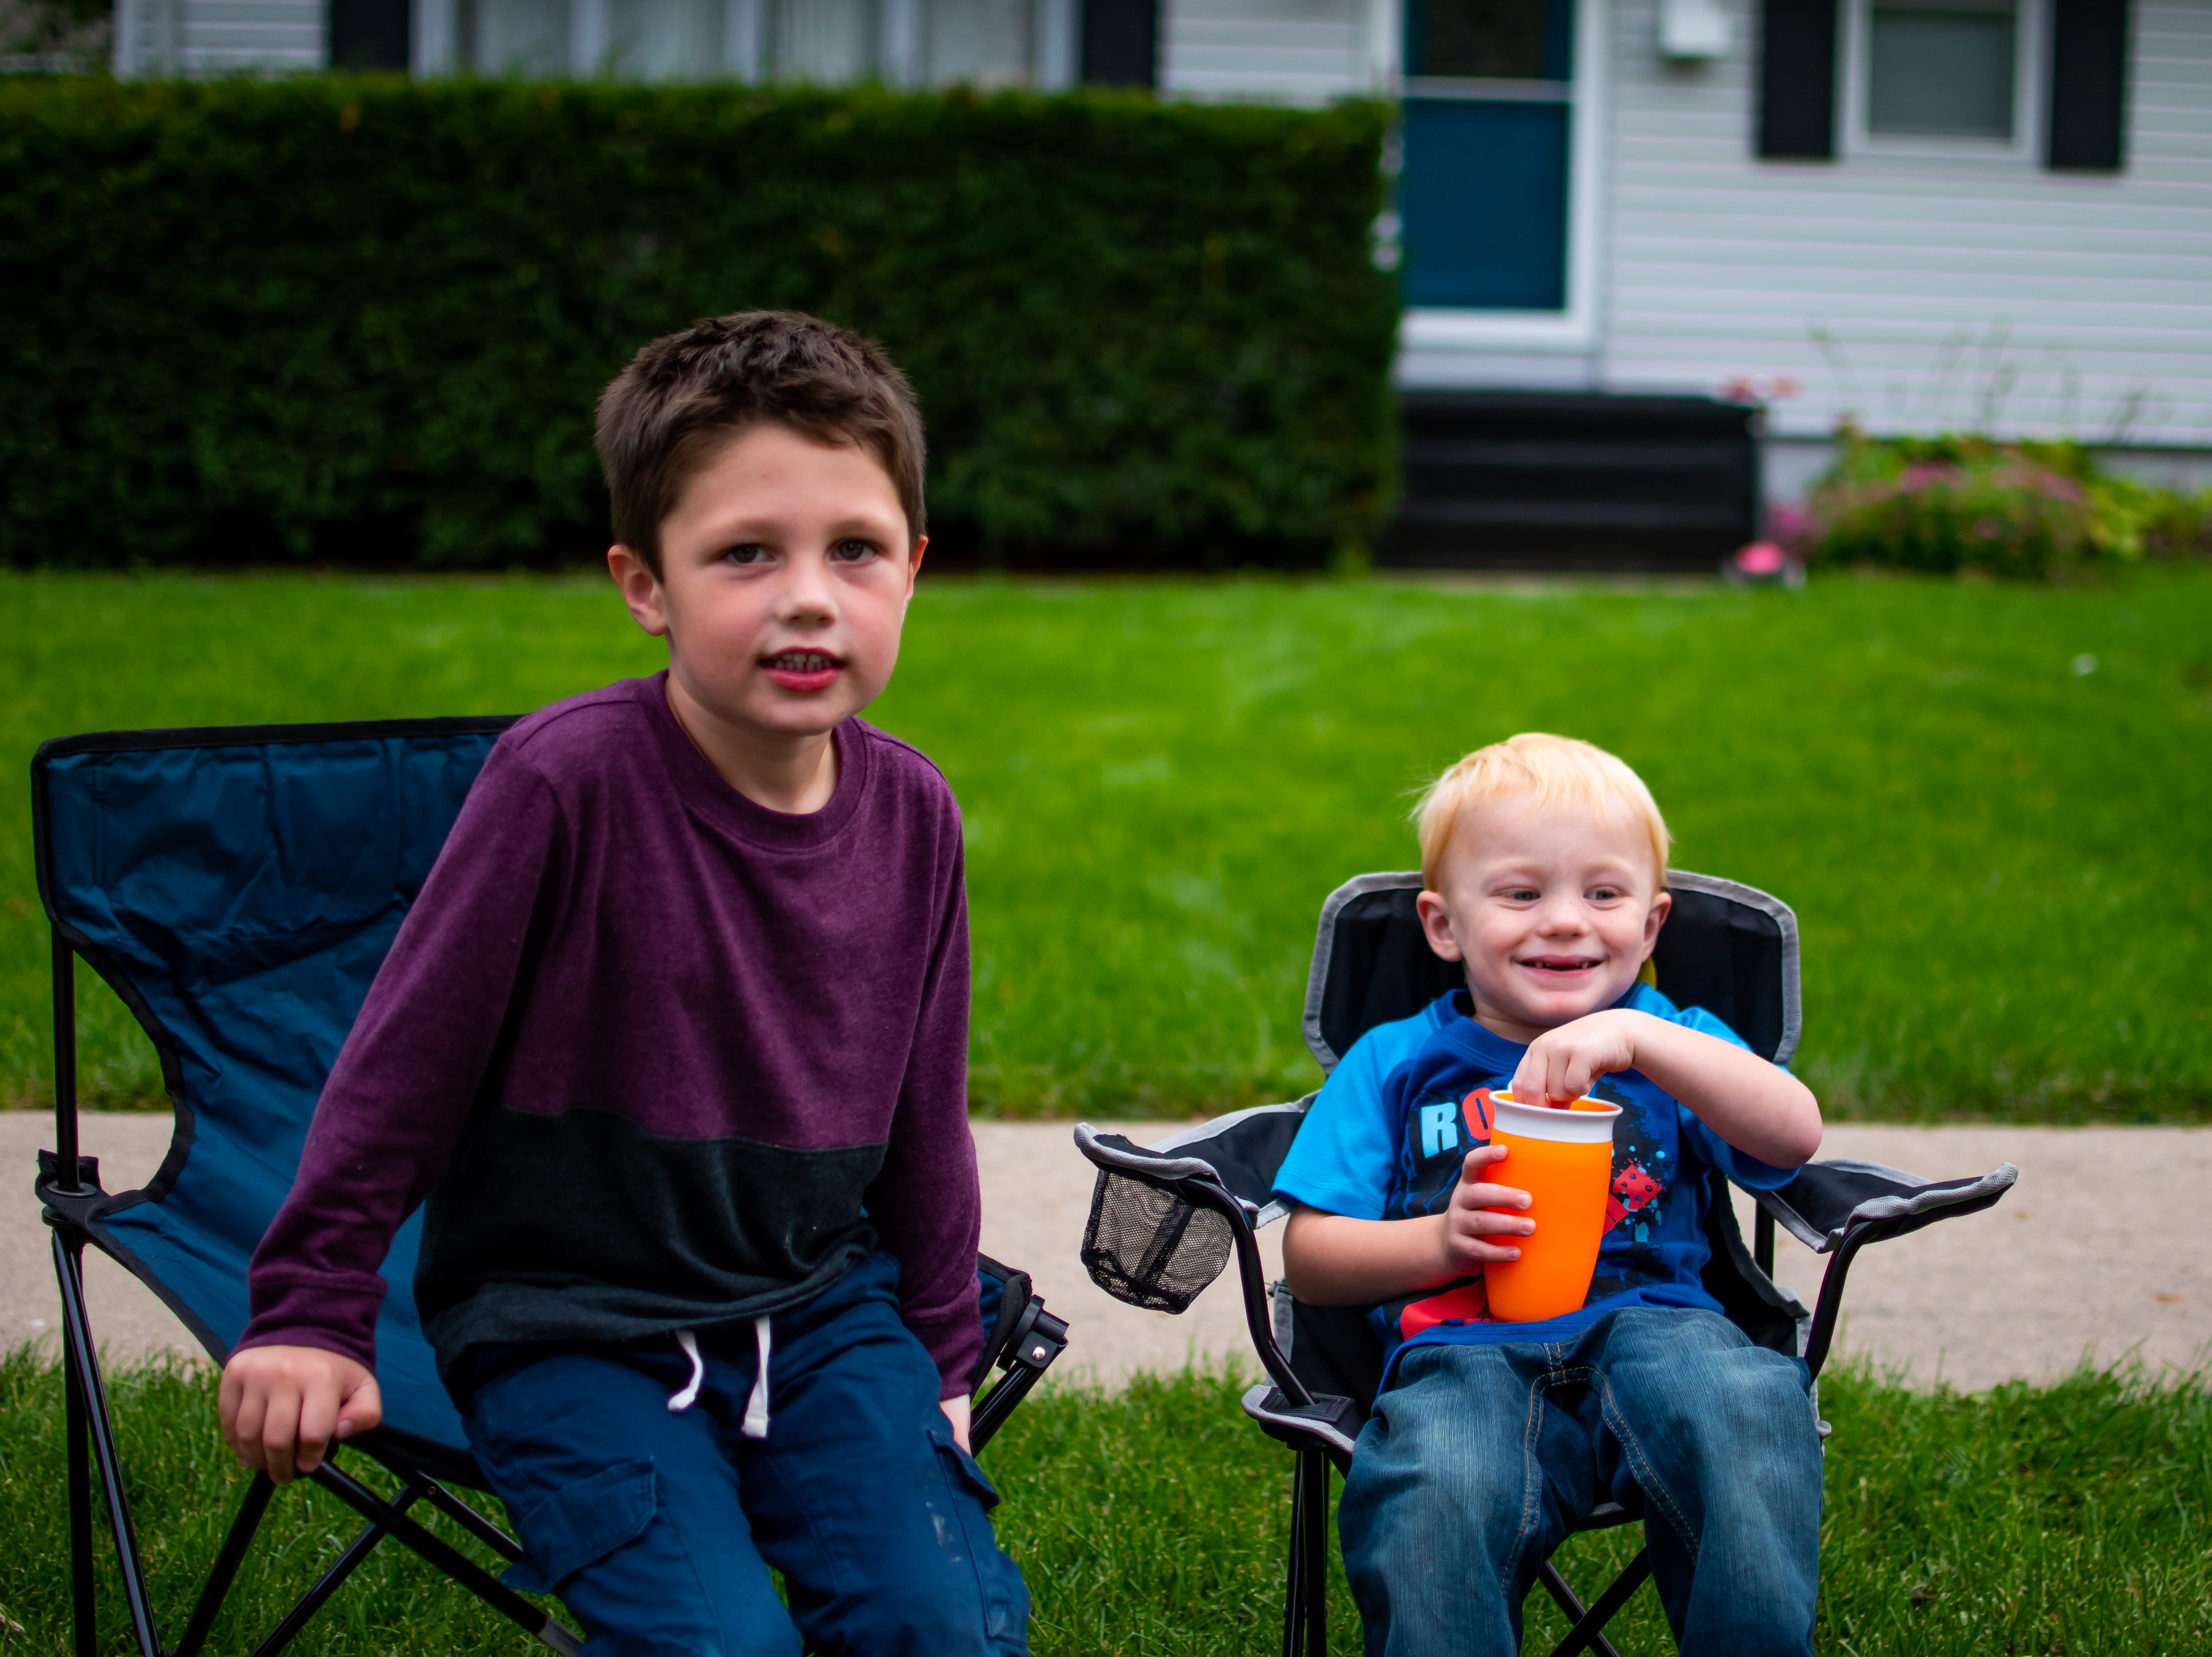 Winston Newberry, 4, and Kindin Cooper, 3, both of Waukee wait for the Waukee Homecoming Parade on Thursday, September 27, 2018 in Waukee.